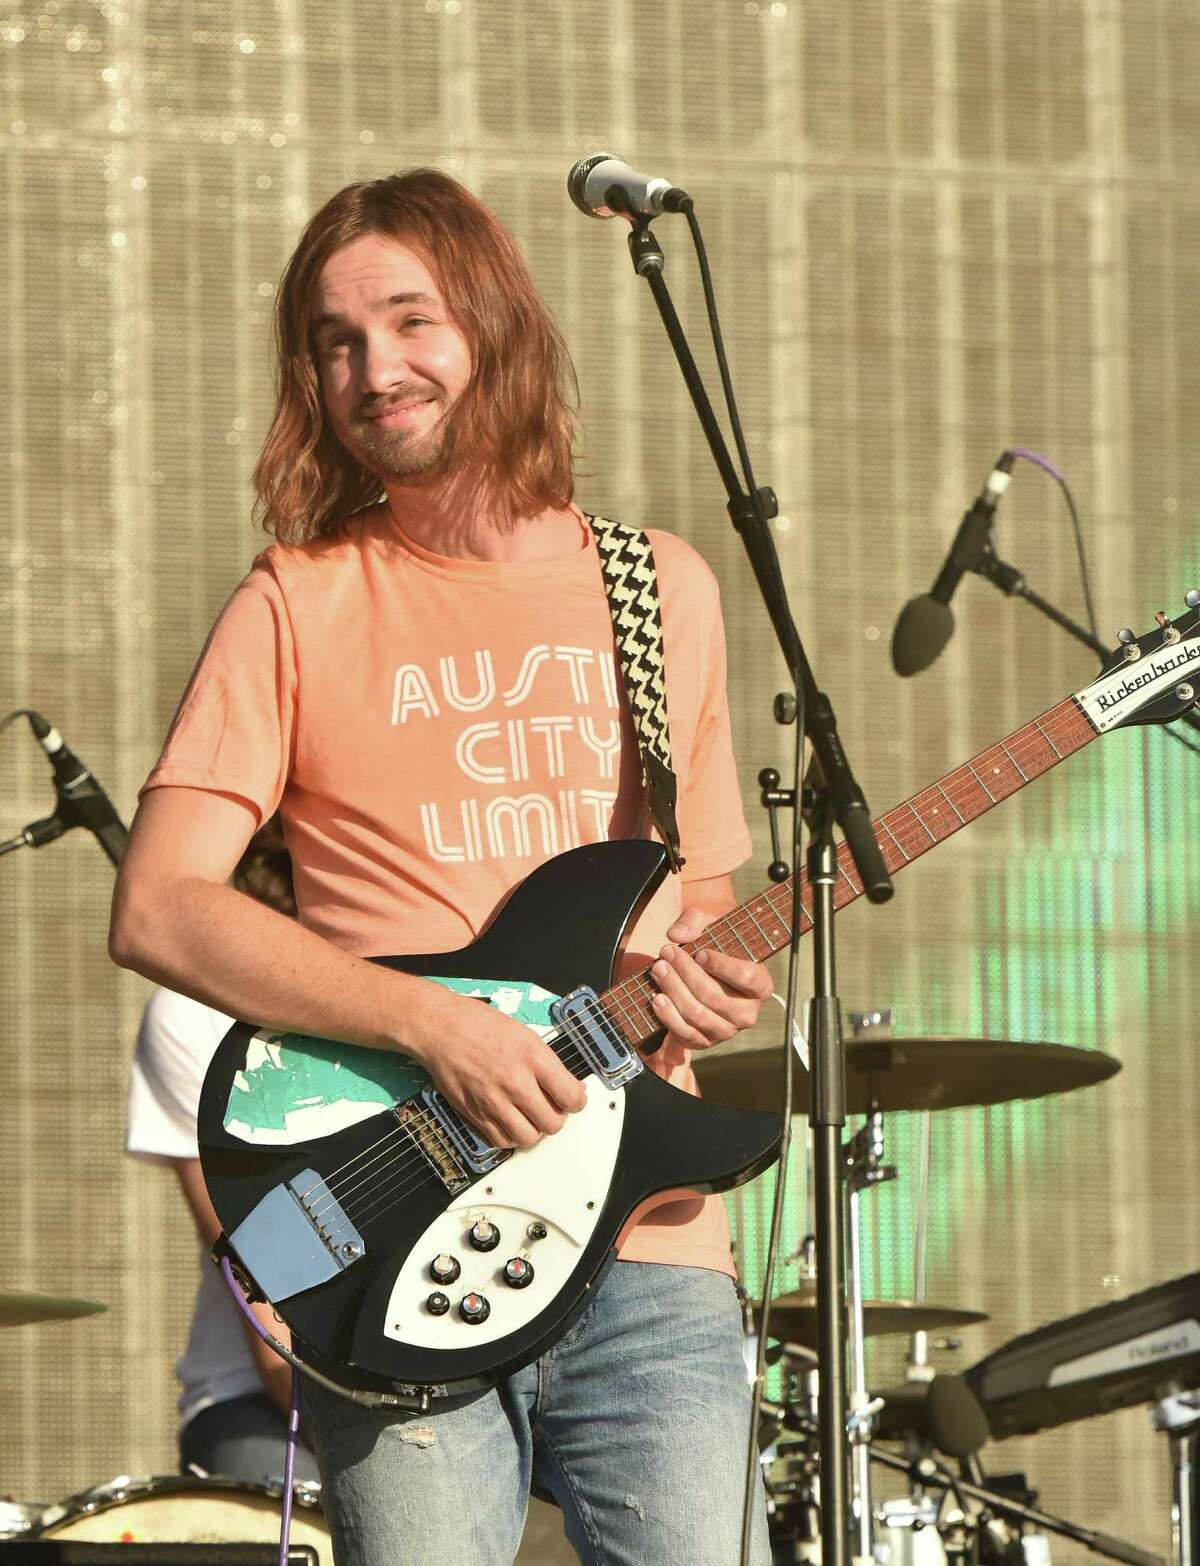 Tame Impala will play at Float Fest in San Marcos. The festival is slated for July 21 and 22, 2018.